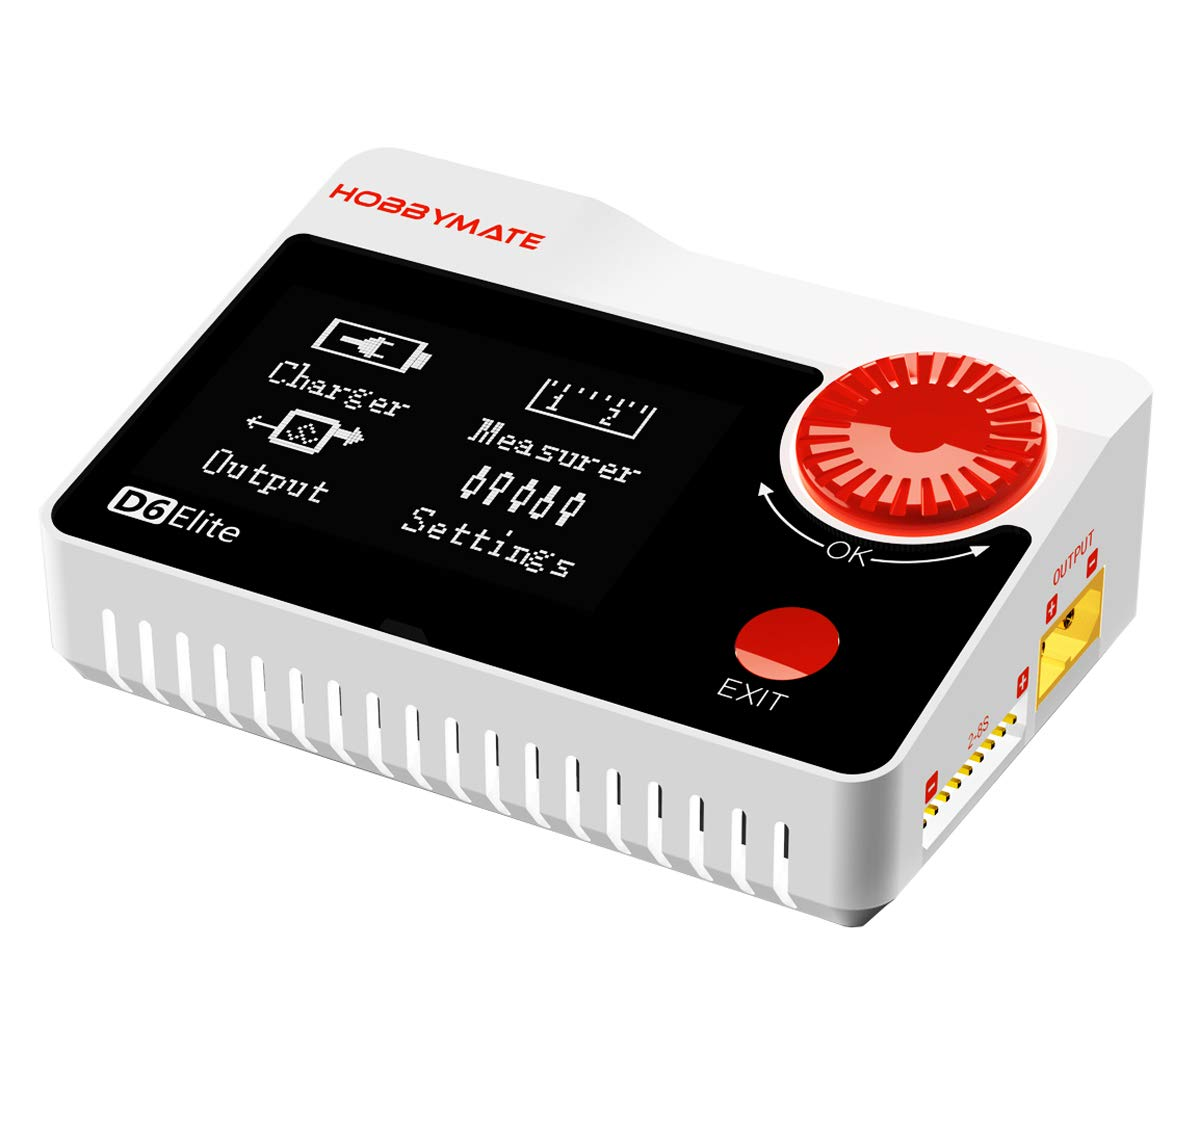 HOBBYMATE 300W 15A Lipo Battery Charger, Cell Checker, Servo Tester